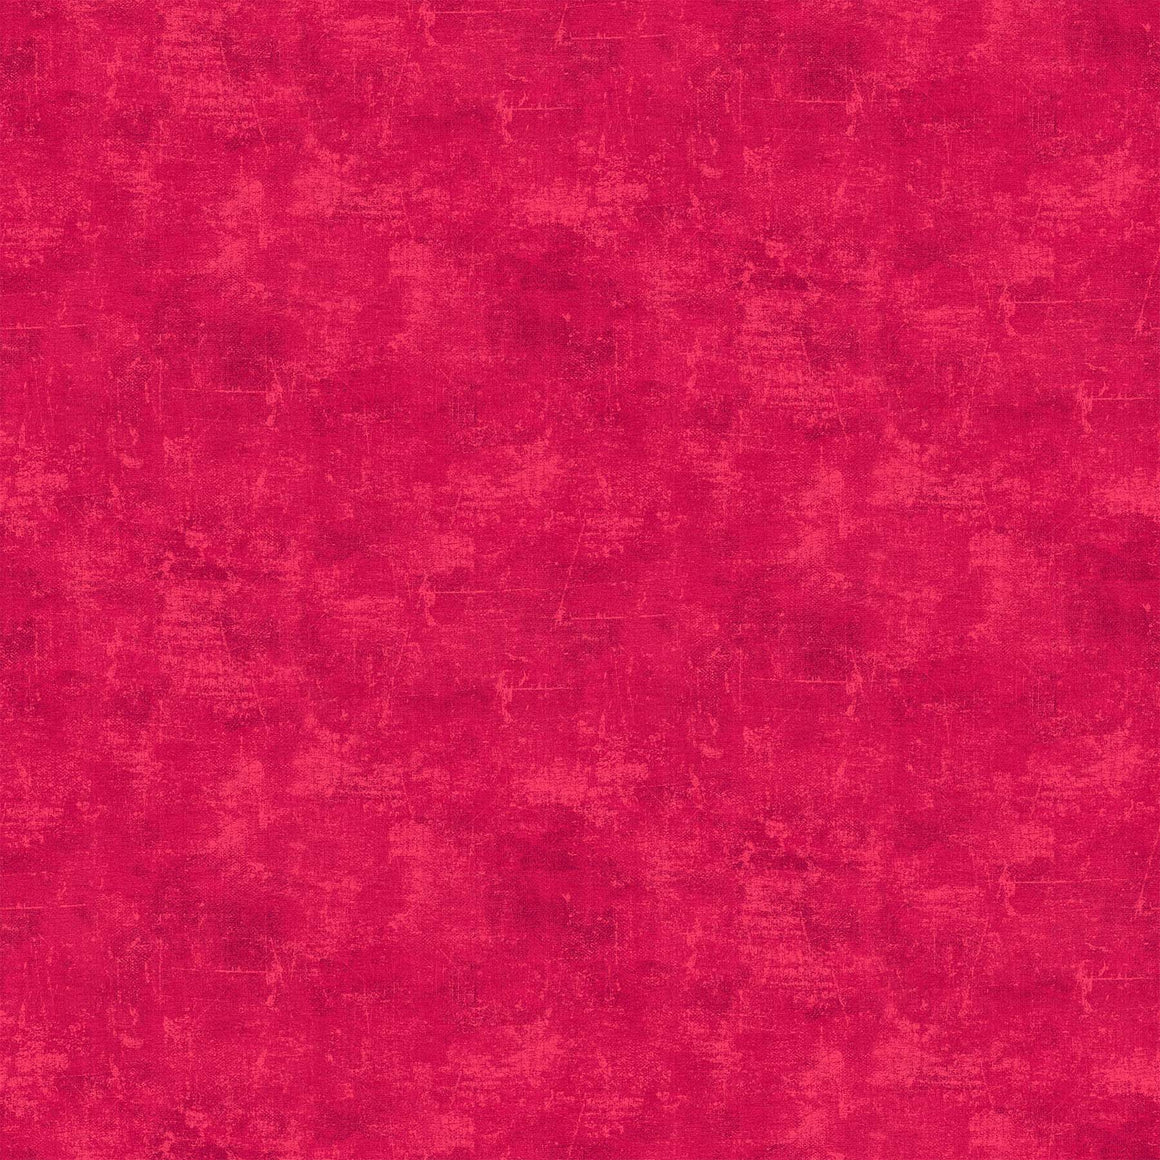 Bright Pink - Canvas Texture - 9030-22